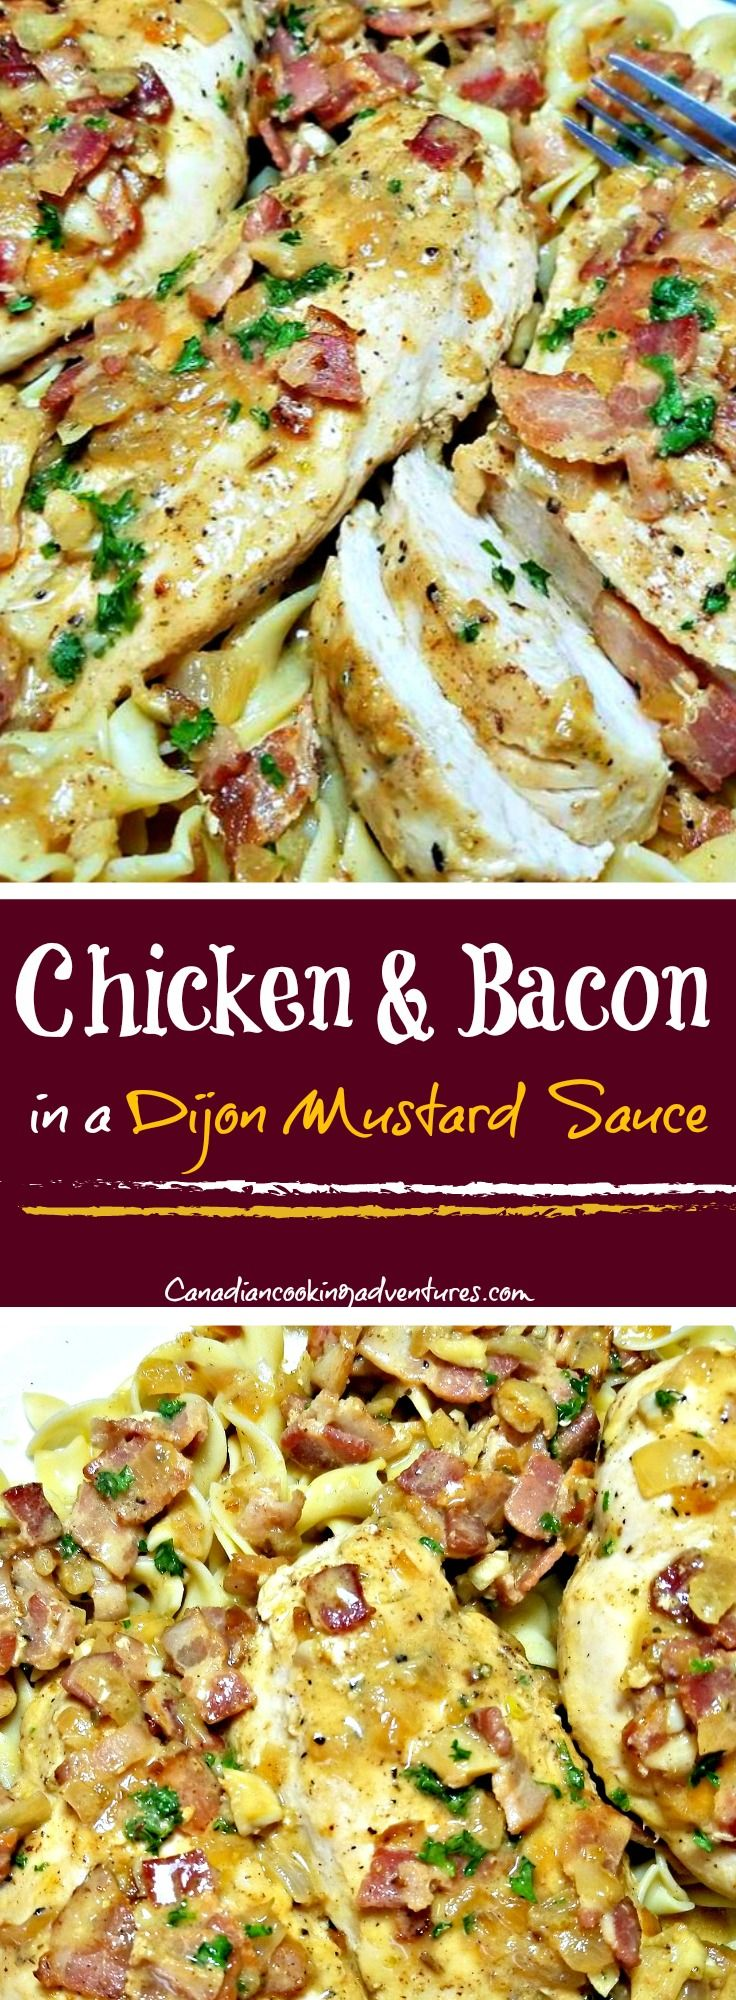 Chicken and Bacon in a Dijon Mustard Sauce